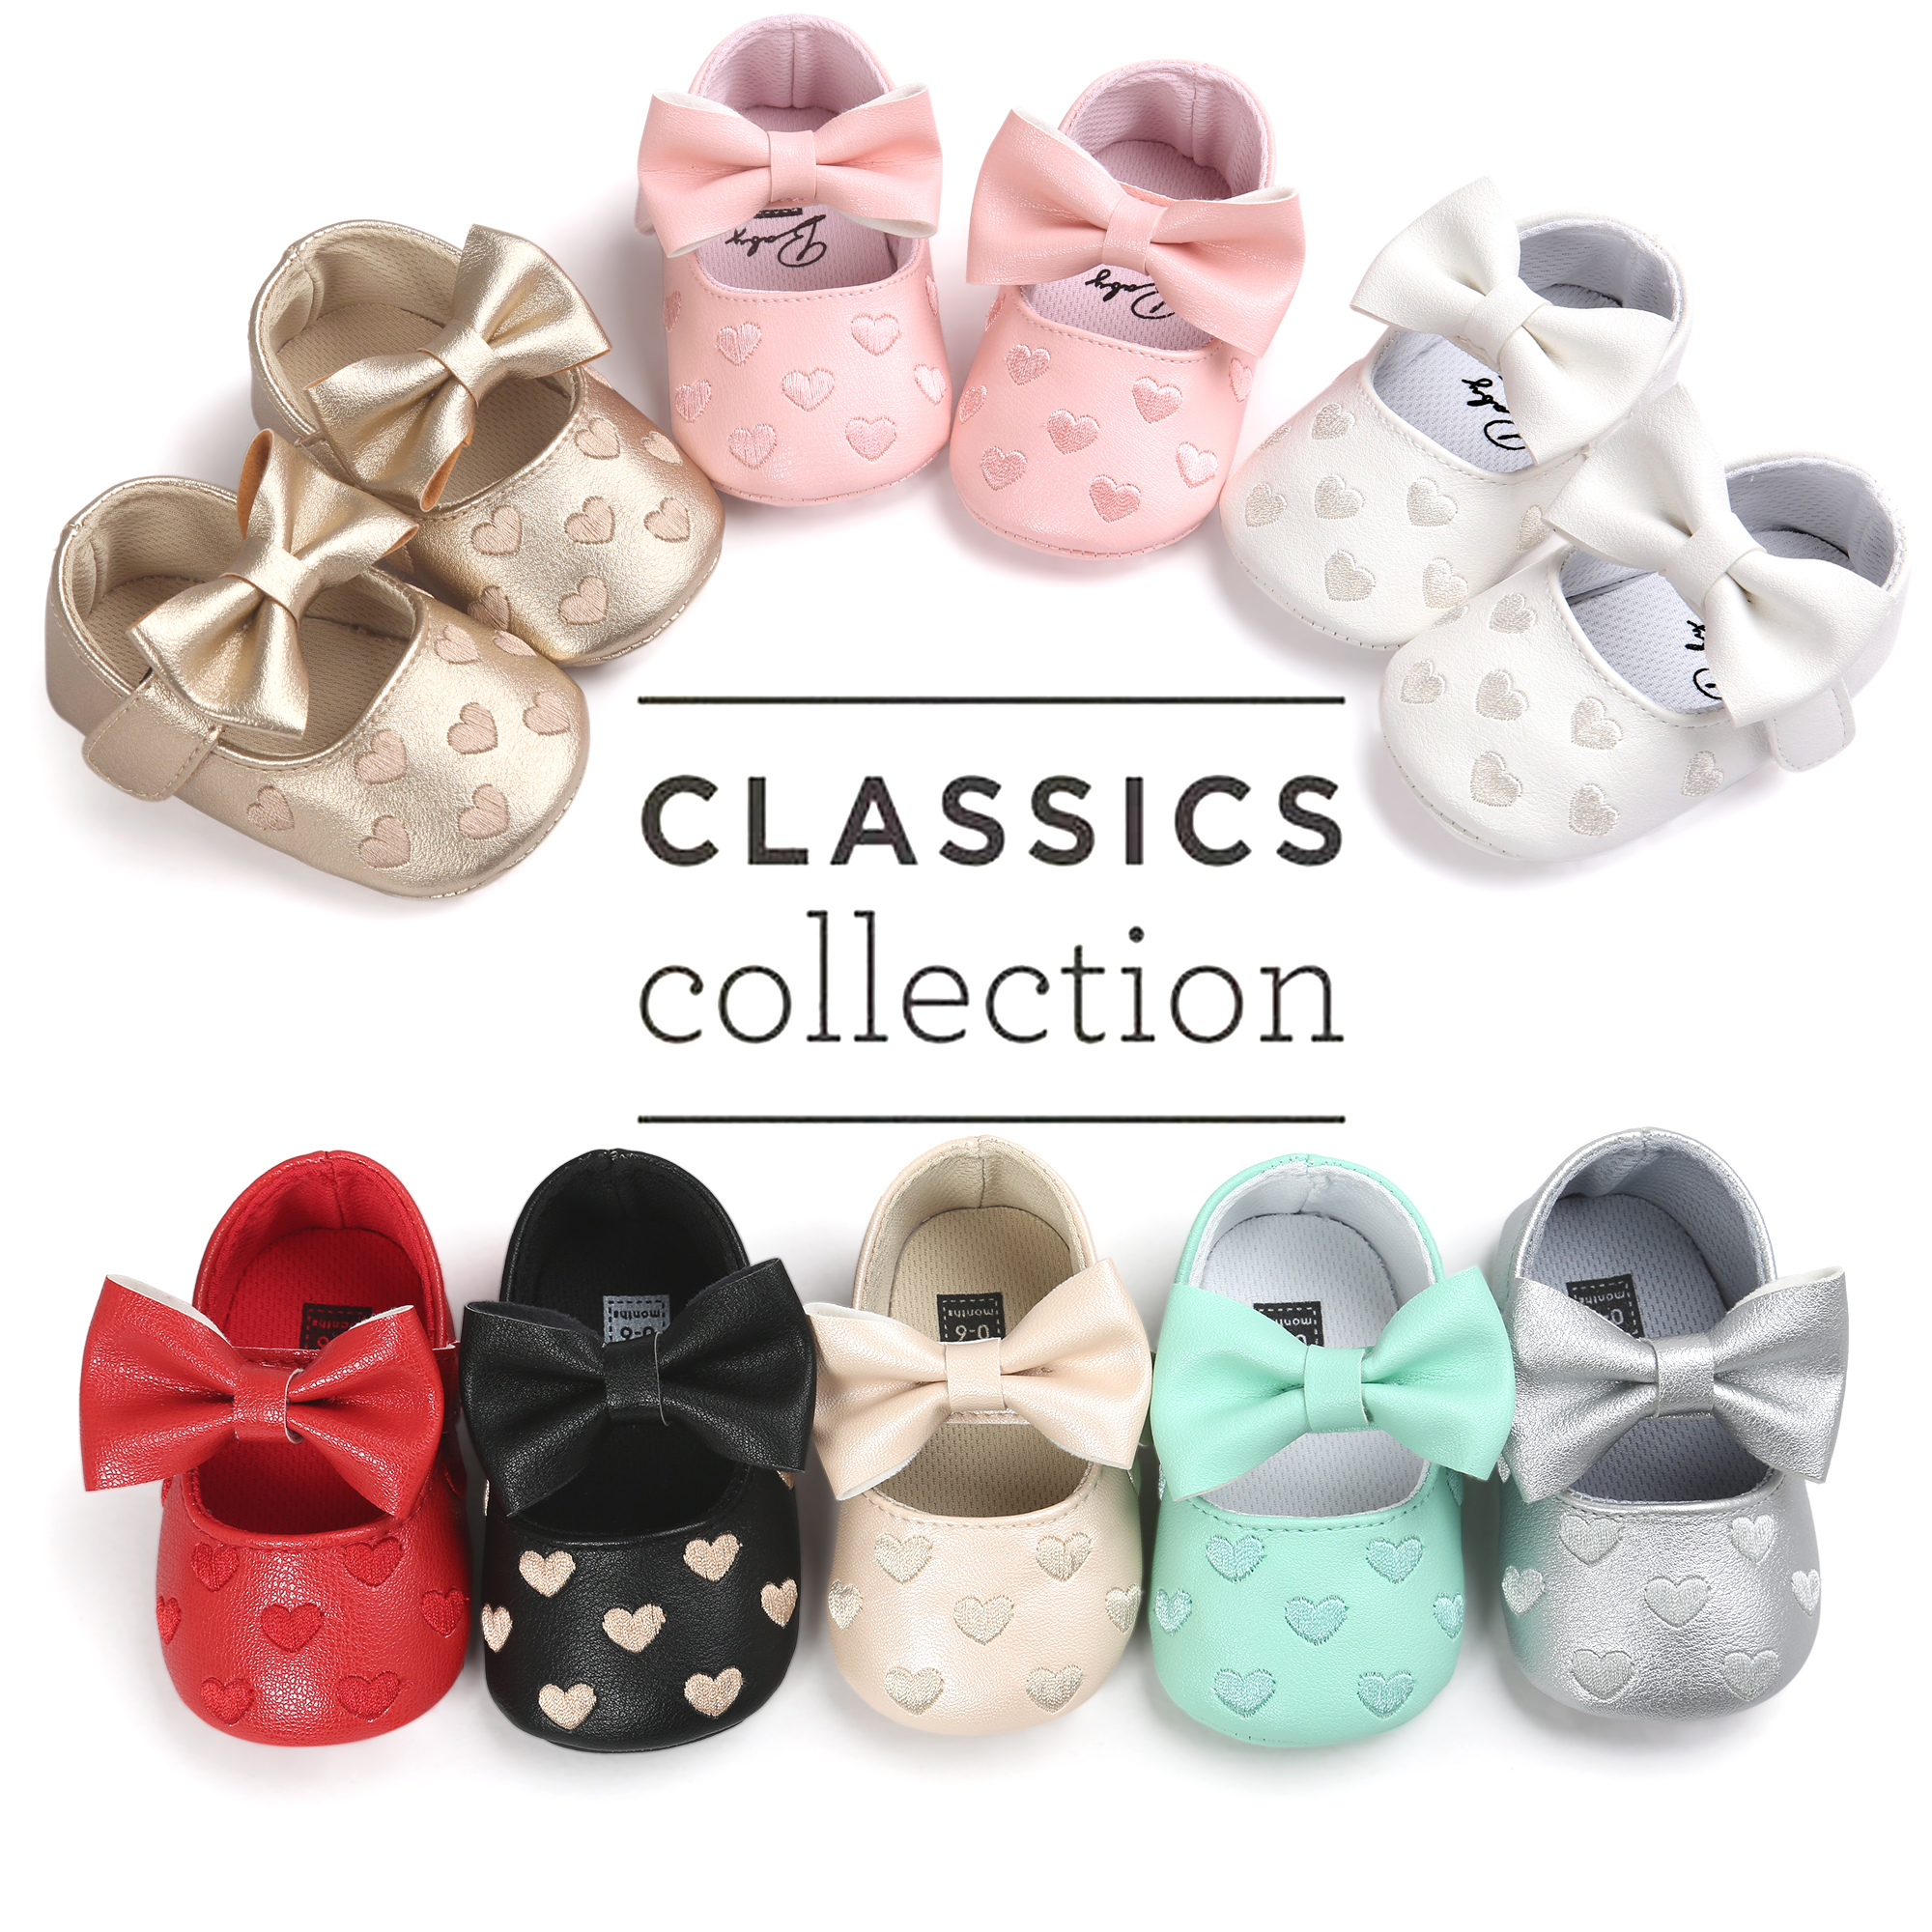 New Newborn Babe Ballet Dress Girl Toddler Shoes Crib Bowknot Single Shoes PU Leather Infant Shoes First Walkers